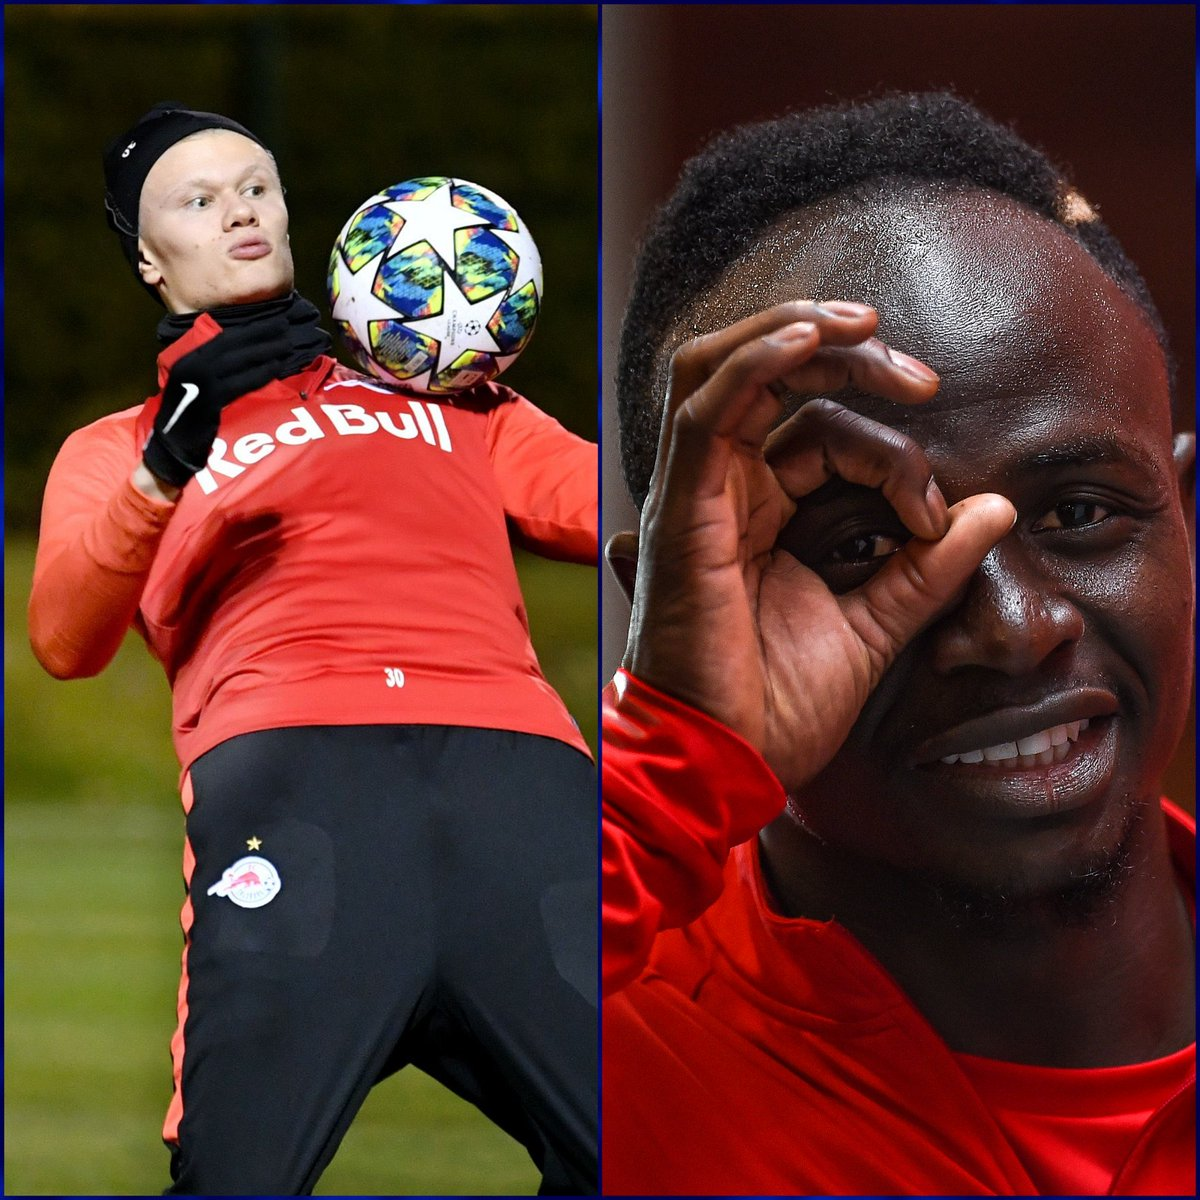 These guys  19/20 | Haaland: 28   Mané: 13   Who is coming out on top in the #UCL tonight? <br>http://pic.twitter.com/2ugMzmT1Sh